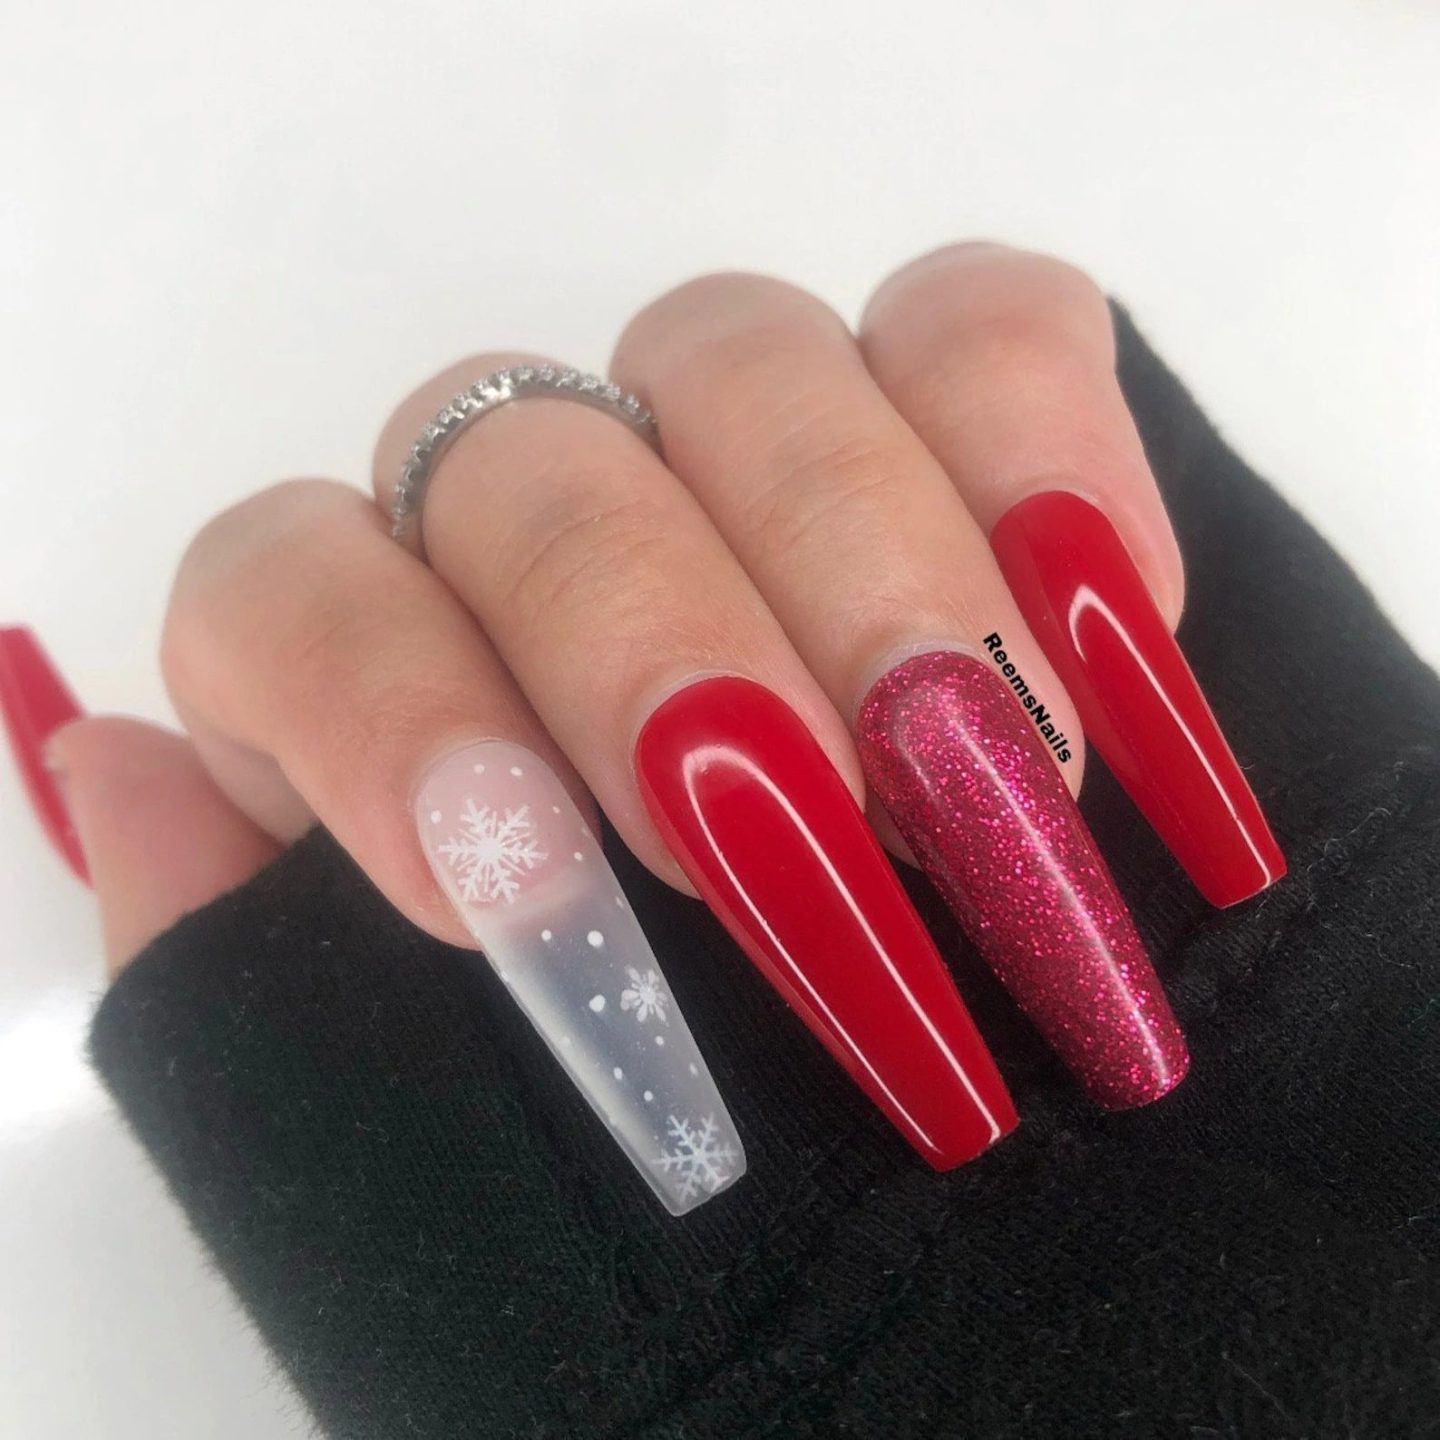 Long red coffin nails with glitter and snowflake nail art